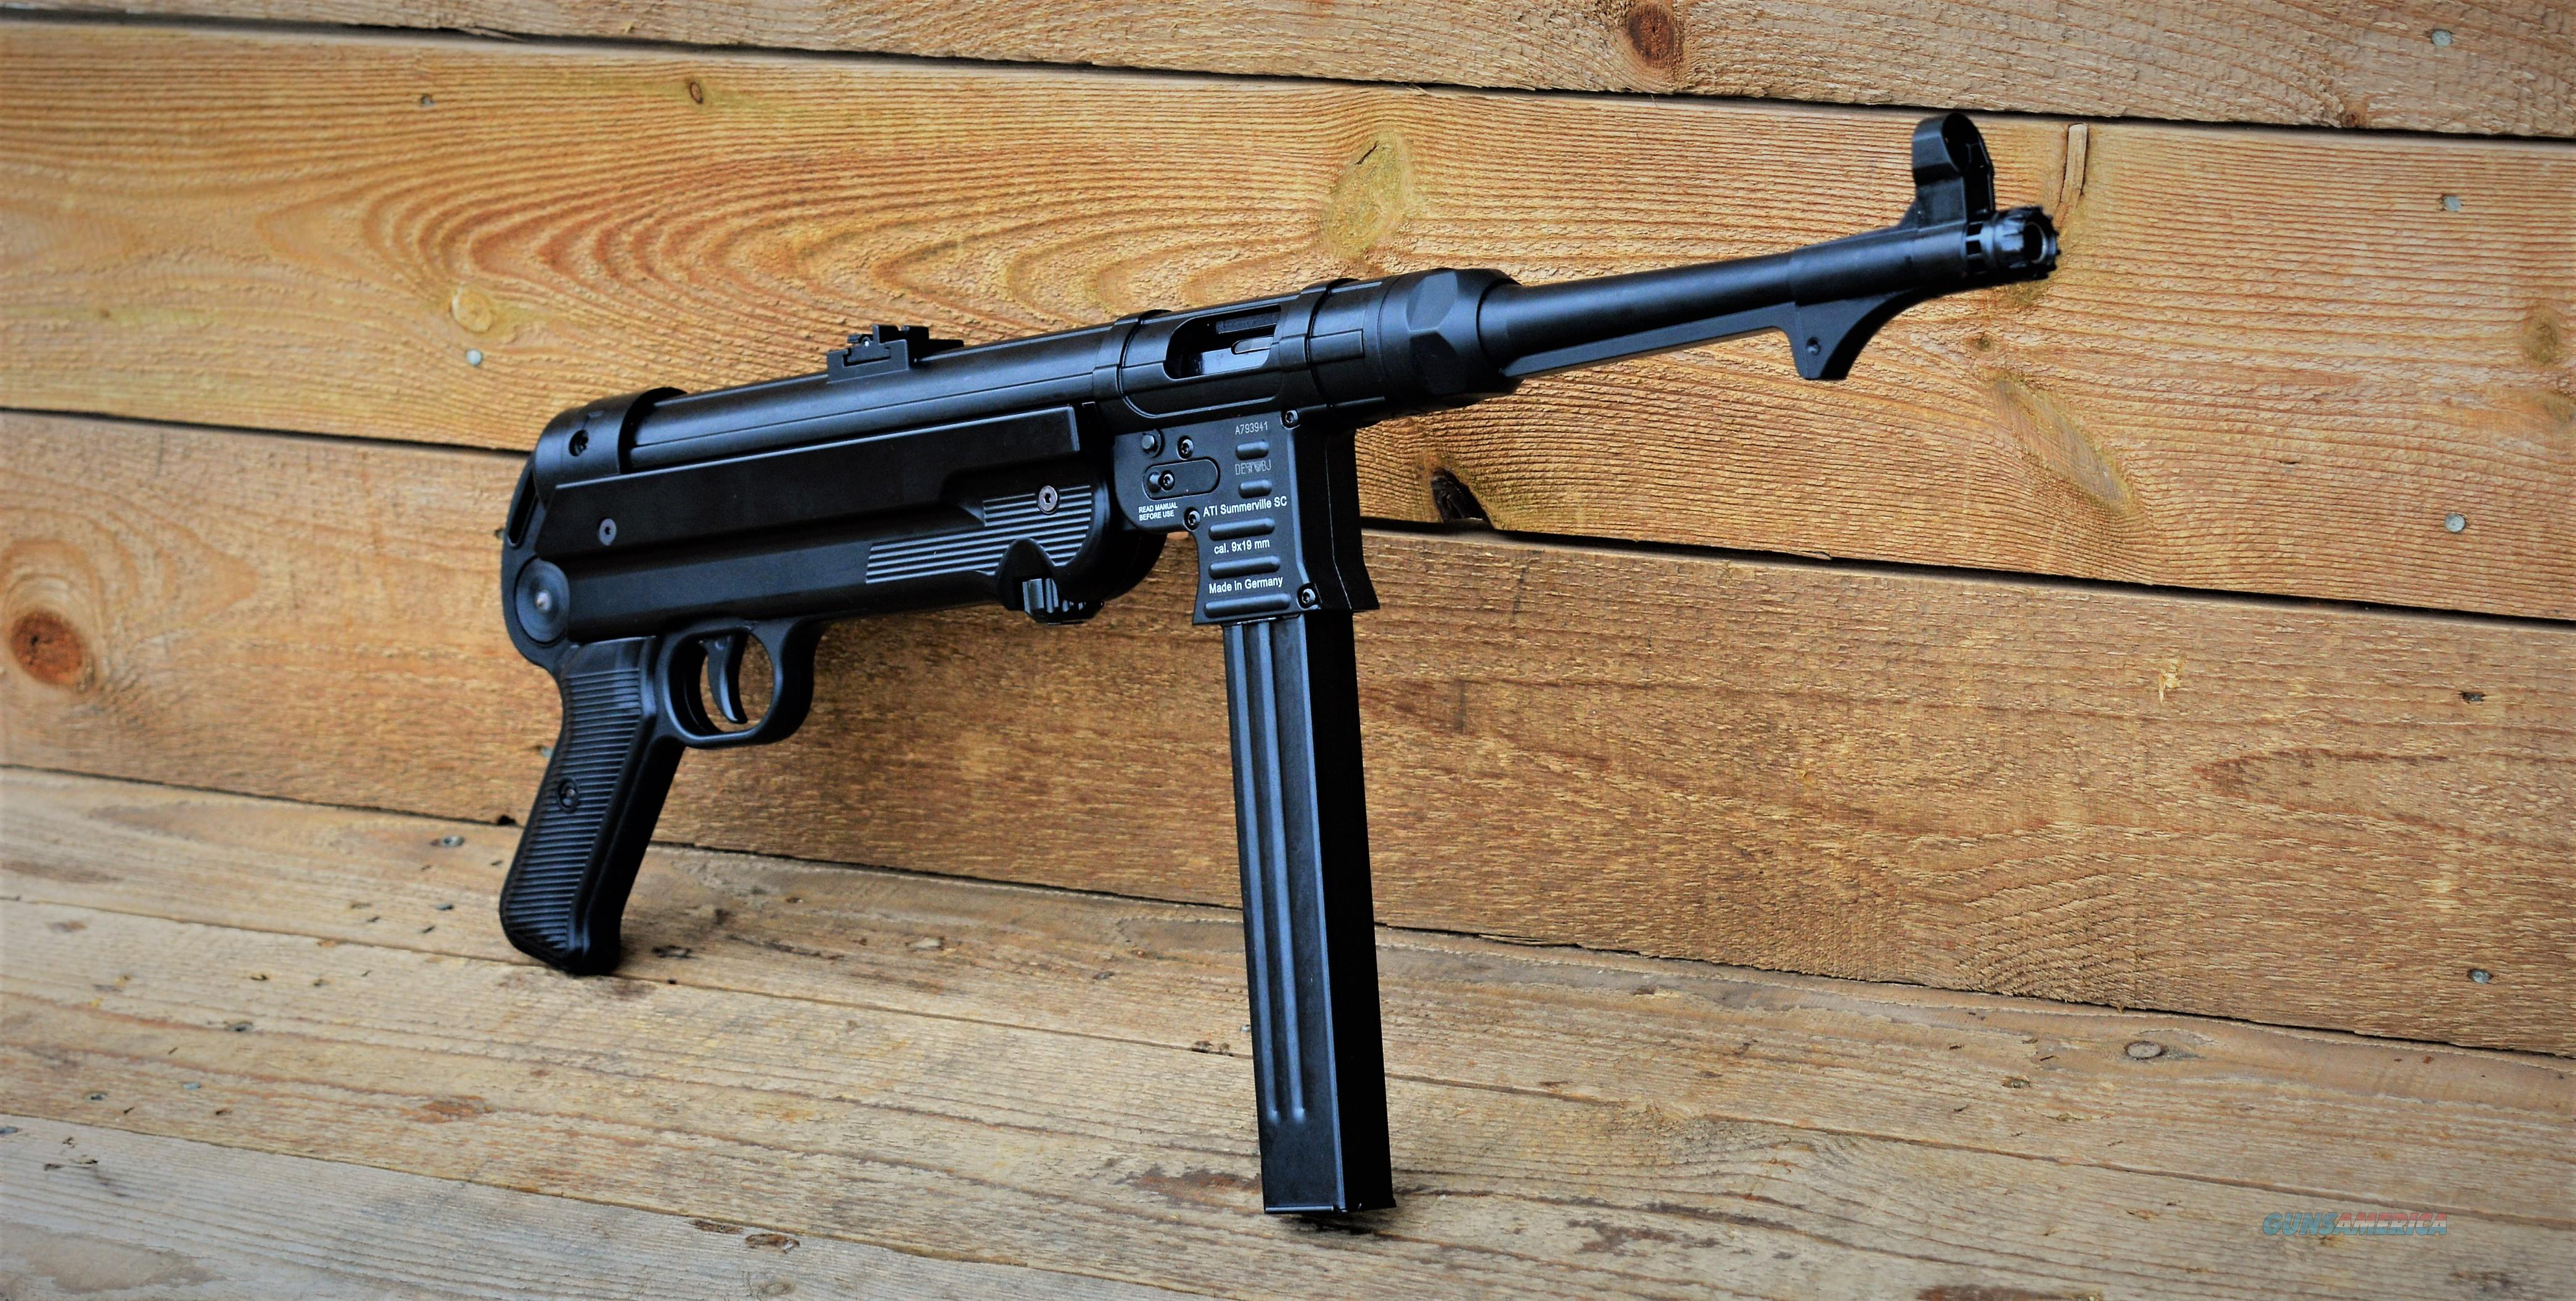 $32 Sale German Sport MP40P WWII MP-40 Sling Recommended!! Used by the socialist party - Communists Party & Dictators the universal Party of Genocide & all-around bad things. God bless America & Capitalism ATI MP40 PISTOL 25 rds  GERGMP409X  Guns > Pistols > American Tactical Imports Pistols